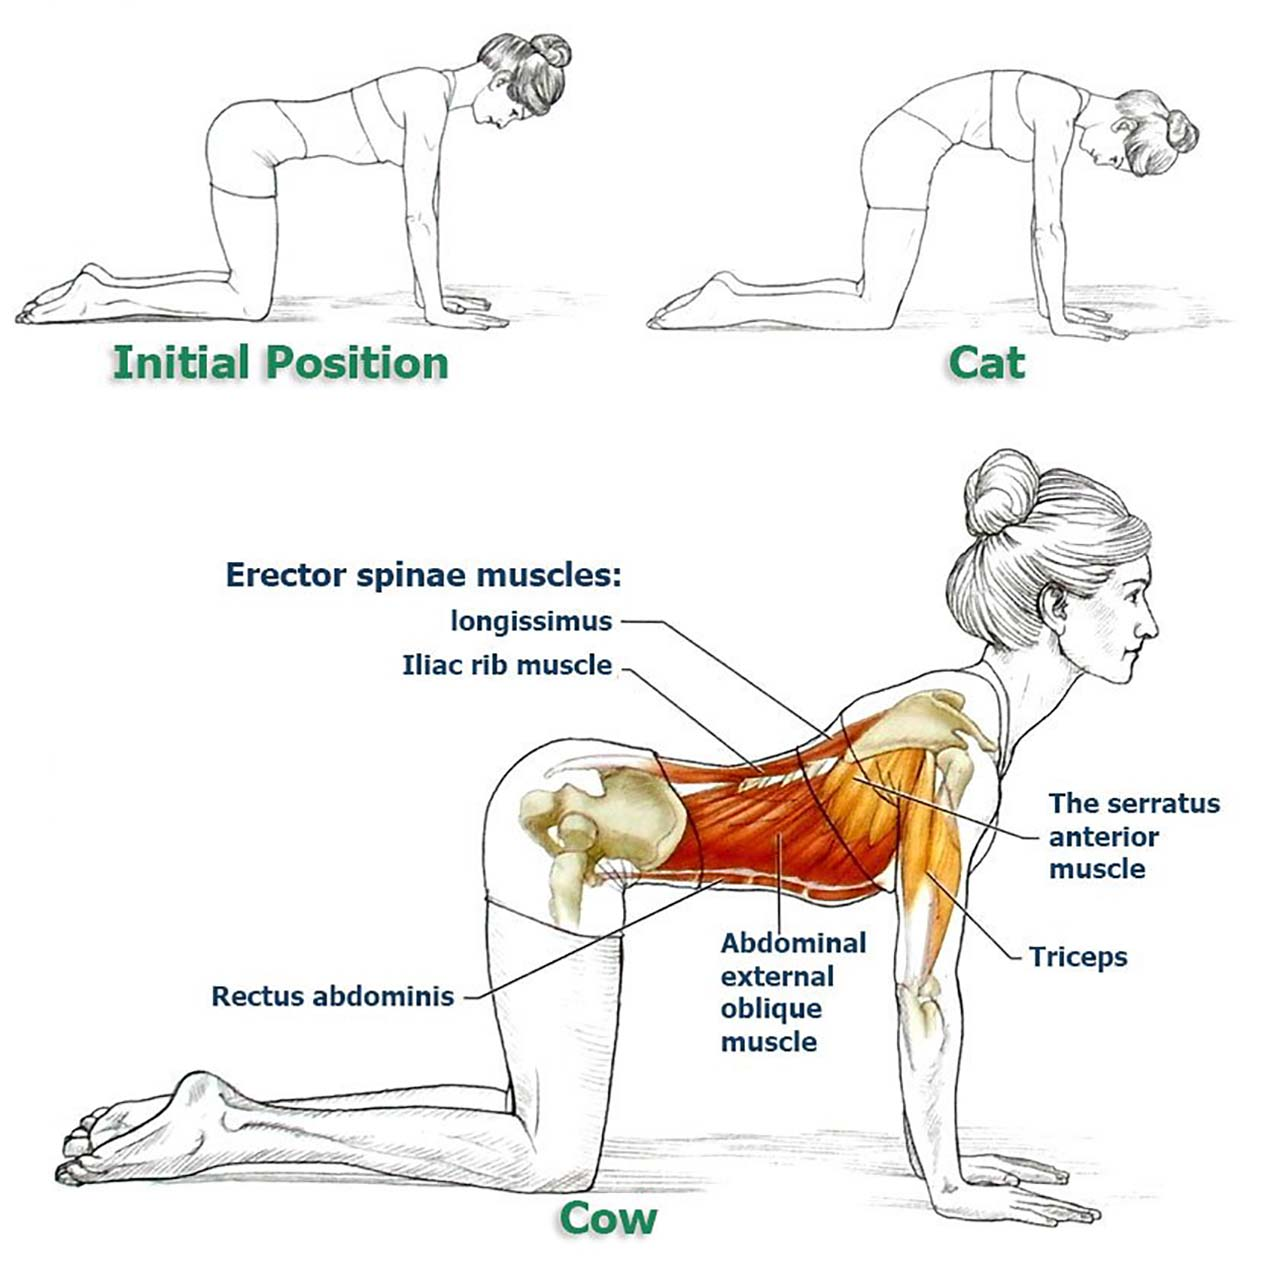 8 Exercises To Improve Your Posture And Relieve Your Back & Spine - Cat & Cow: Cat & cow poses are very common poses that you'll see in the beginning of most yoga classes - it's like a warm-up. Cat & cow is great for happy spine, massages the internal organs, stretches the belly, builds muscles in the back and can also reduce. You can pad the knees with a blanket or we can double up the mat. Start the pose on your hands and knees. Spread your palms as wide as you can and place them underneath the shoulders, knees directly underneath the hips. Move your belly downward and the shoulders upward while looking towards the sky as you inhale – that's cow. As you exhale, curl your tailbone under travel up the spine, draw the navel up towards the sky, chin slowly rotates, tilts towards the chest.